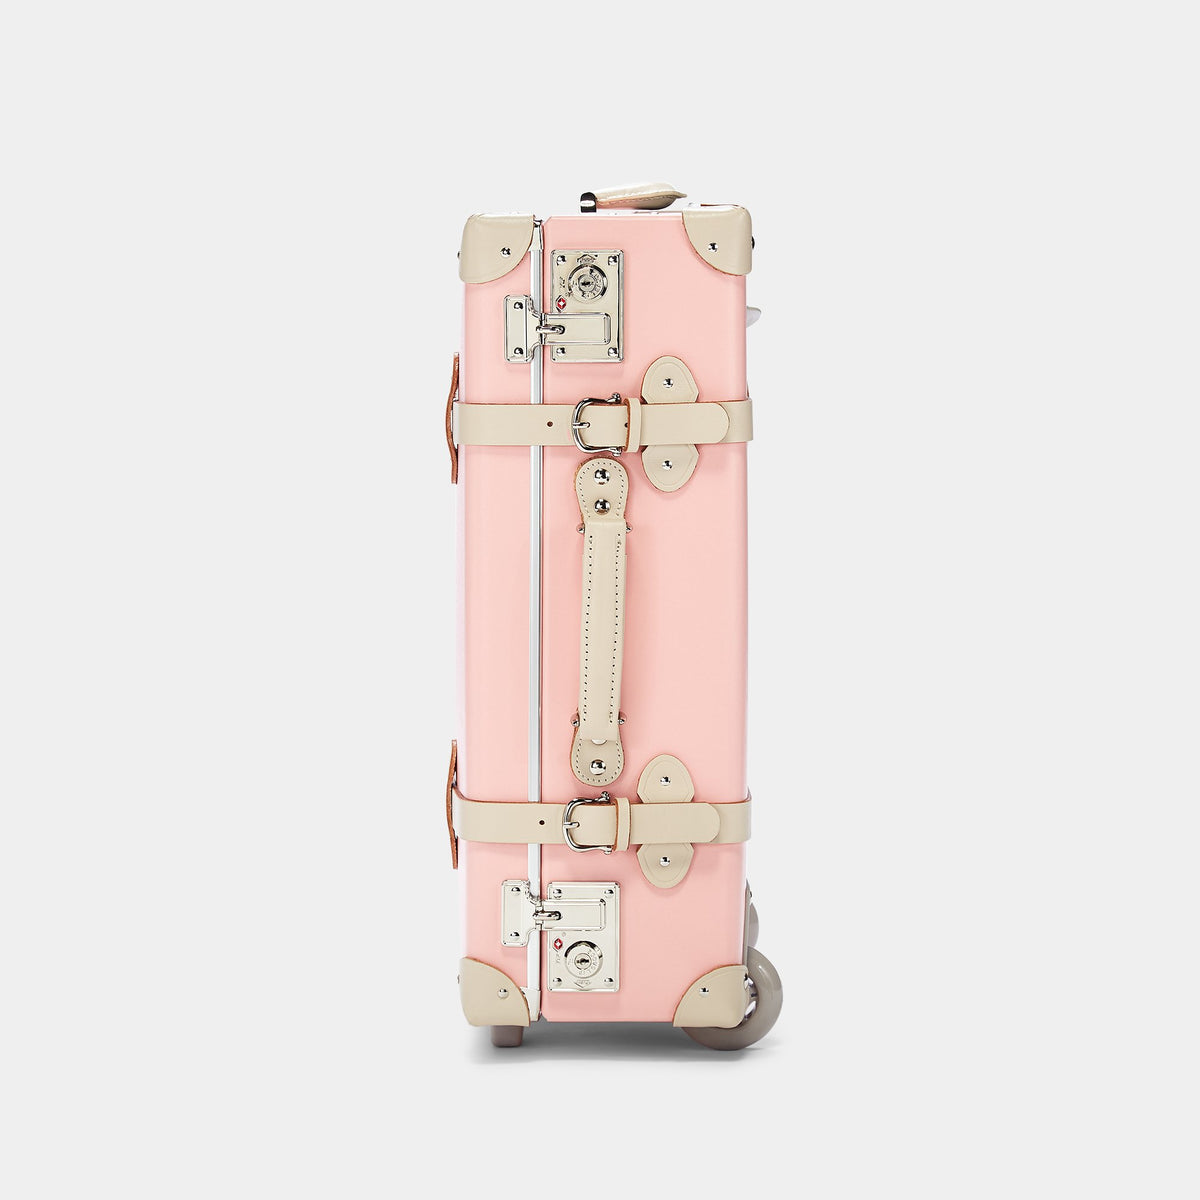 The Botanist Carryon in Pink - Vintage-Inspired Carry On Case - Exterior Side